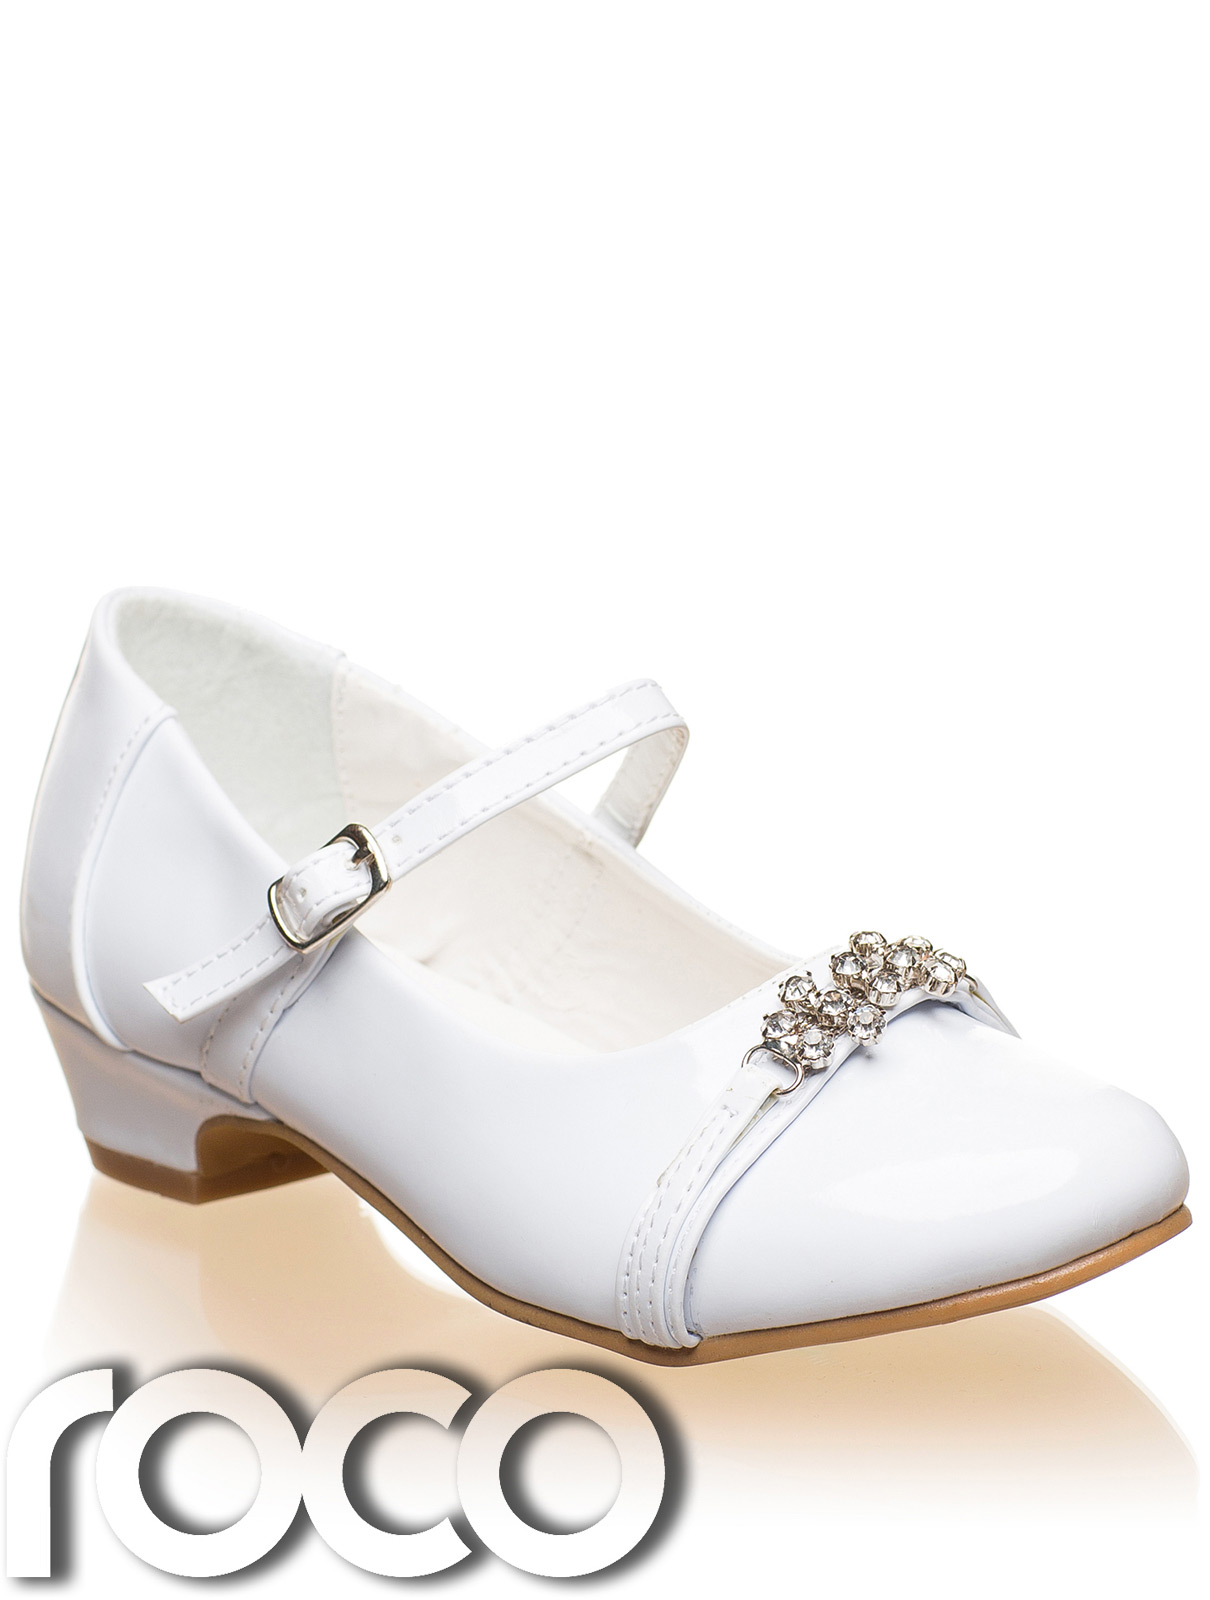 Wedding Communion Shoes girls white shoes communion bridesmaid prom click big image to enlarge further